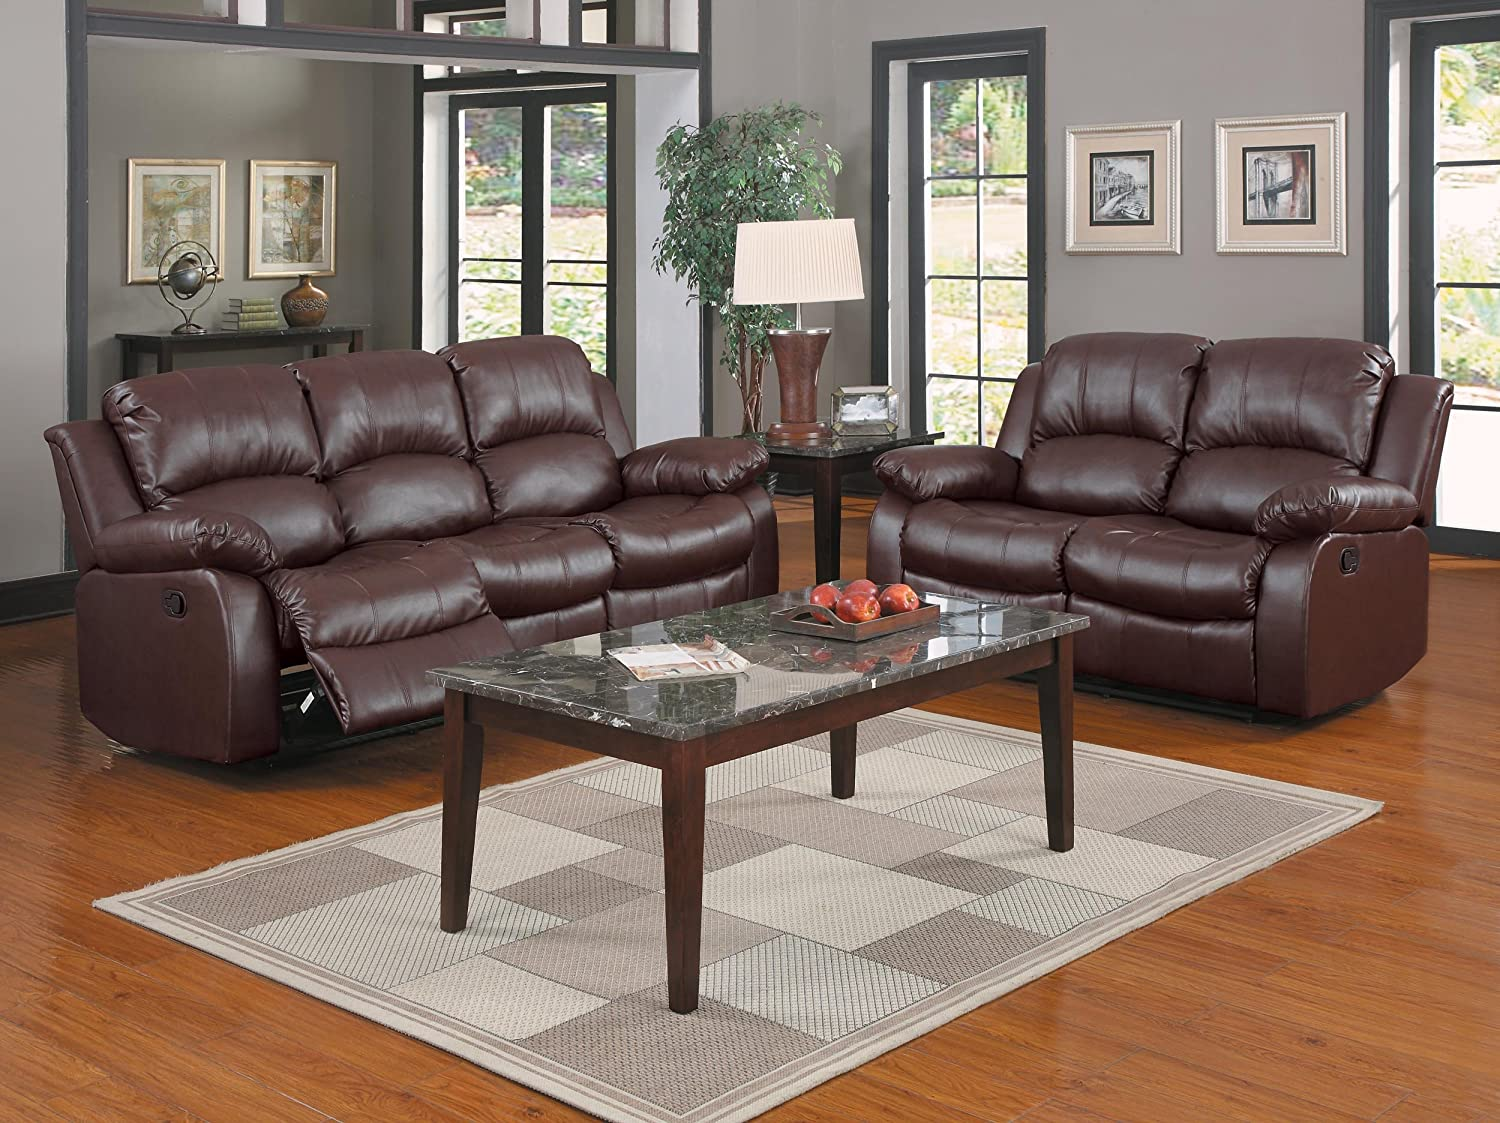 Two Loveseats In Living Room Amazoncom Homelegance Double Reclining Loveseat Brown Bonded